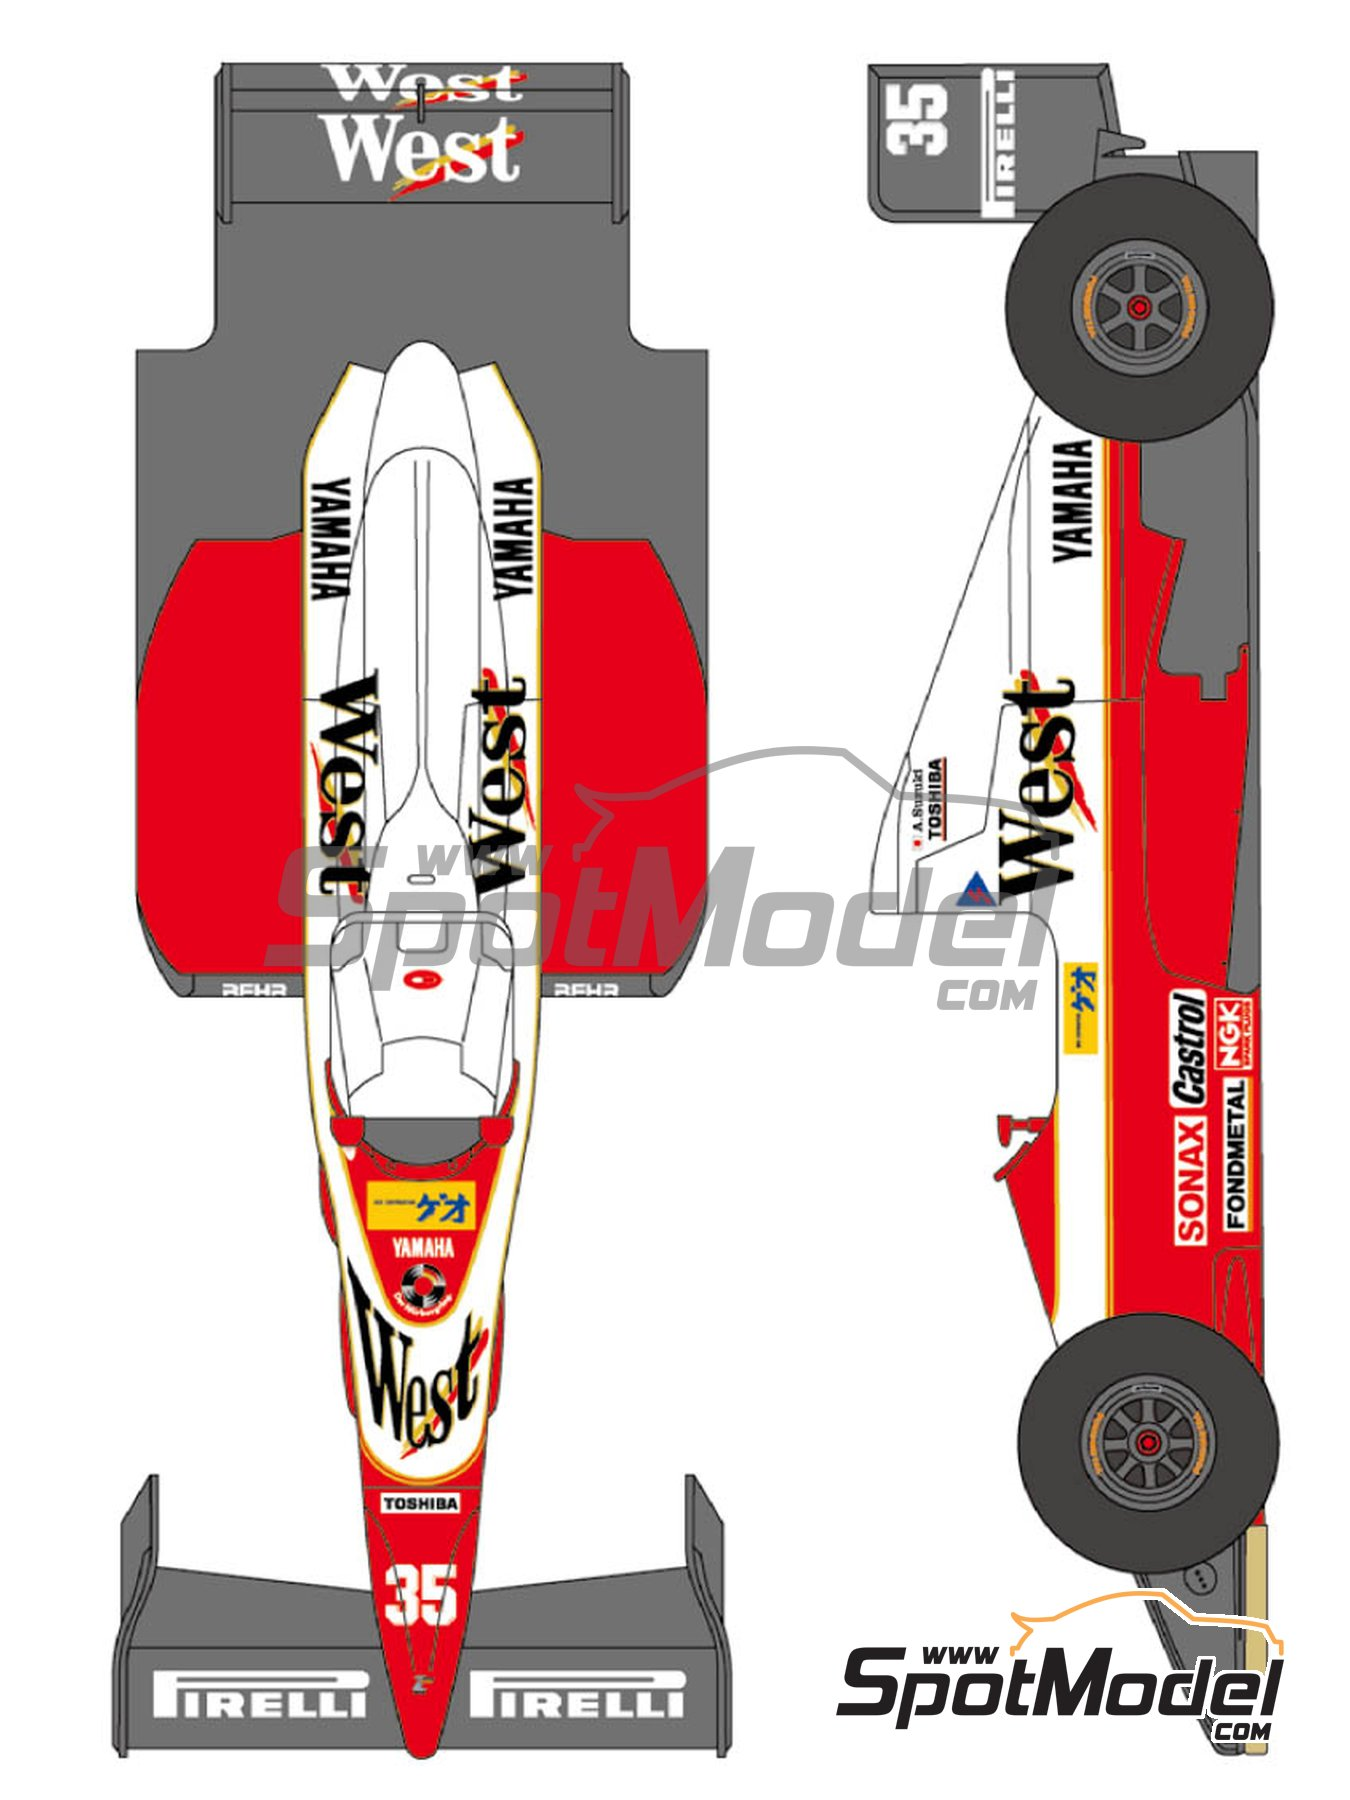 Zakspeed Yamaha ZK 891 West - FIA Formula 1 World Championship 1989 | Marking / livery in 1/24 scale manufactured by Shunko Models (ref. SHK-D144) image